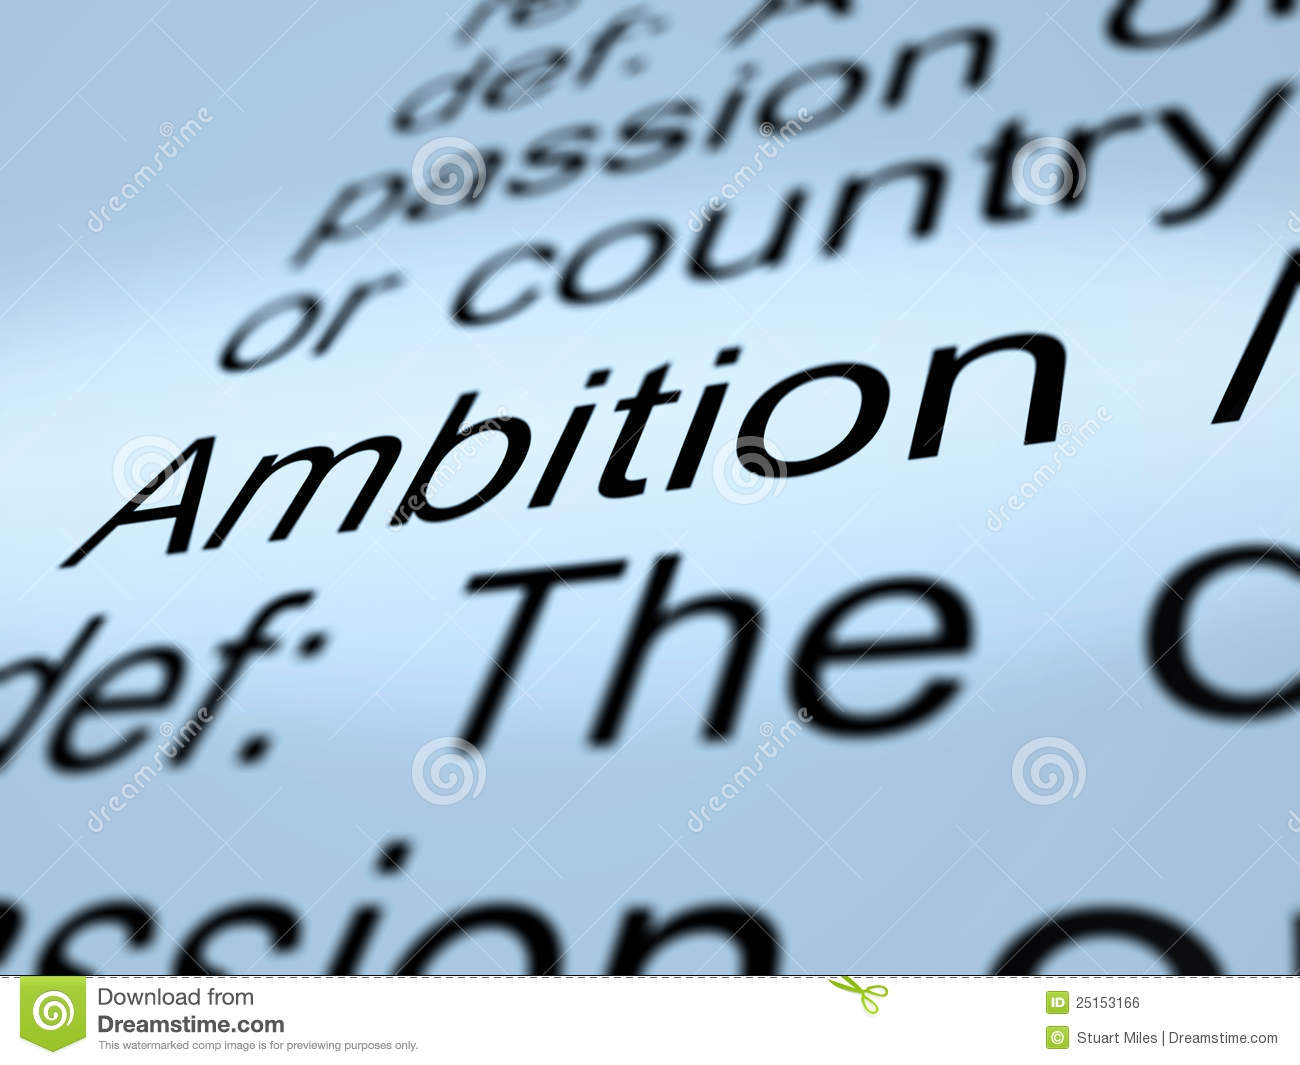 Definition essay on ambitions